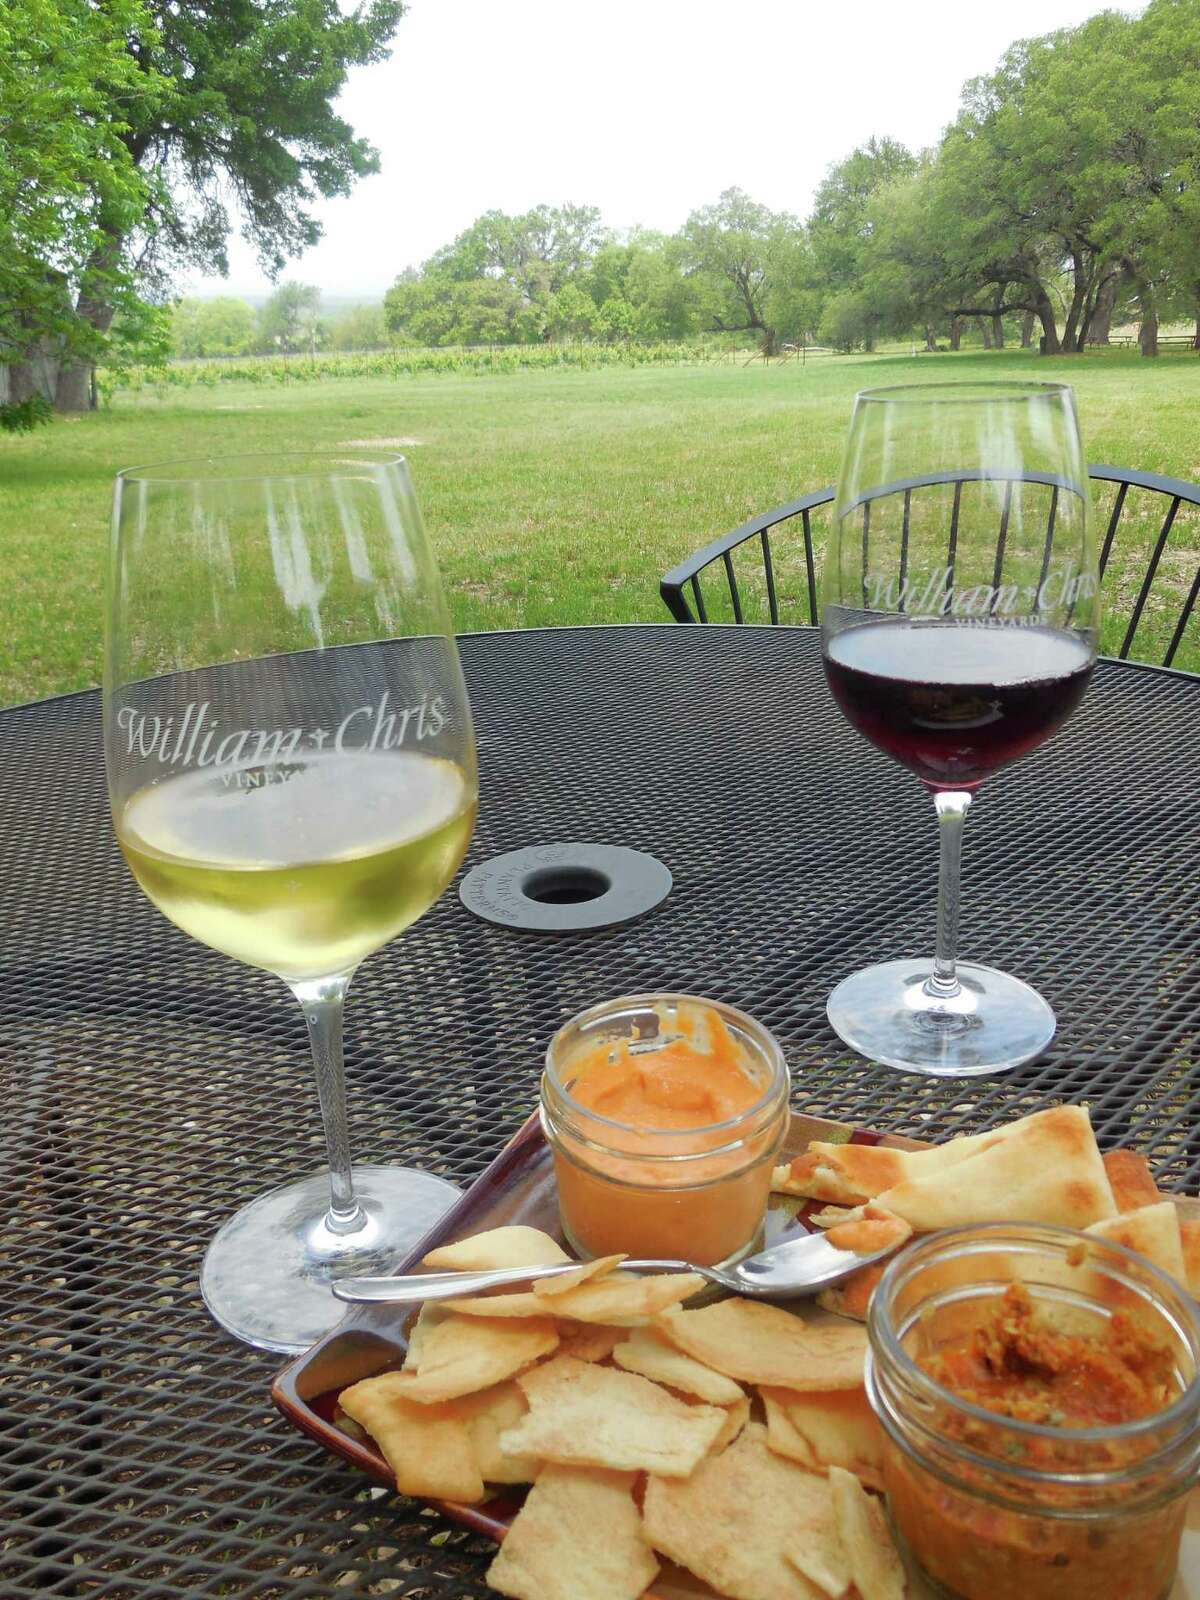 The William Chris Vineyard in Hye, Texas, is one of more than two dozen stops on Wine Road 290 east of Fredericksburg, making the area a competitor to the Napa Valley for wine lovers. The Texas wine region was listed as a top travel destination for 2017 by Lonely Planet